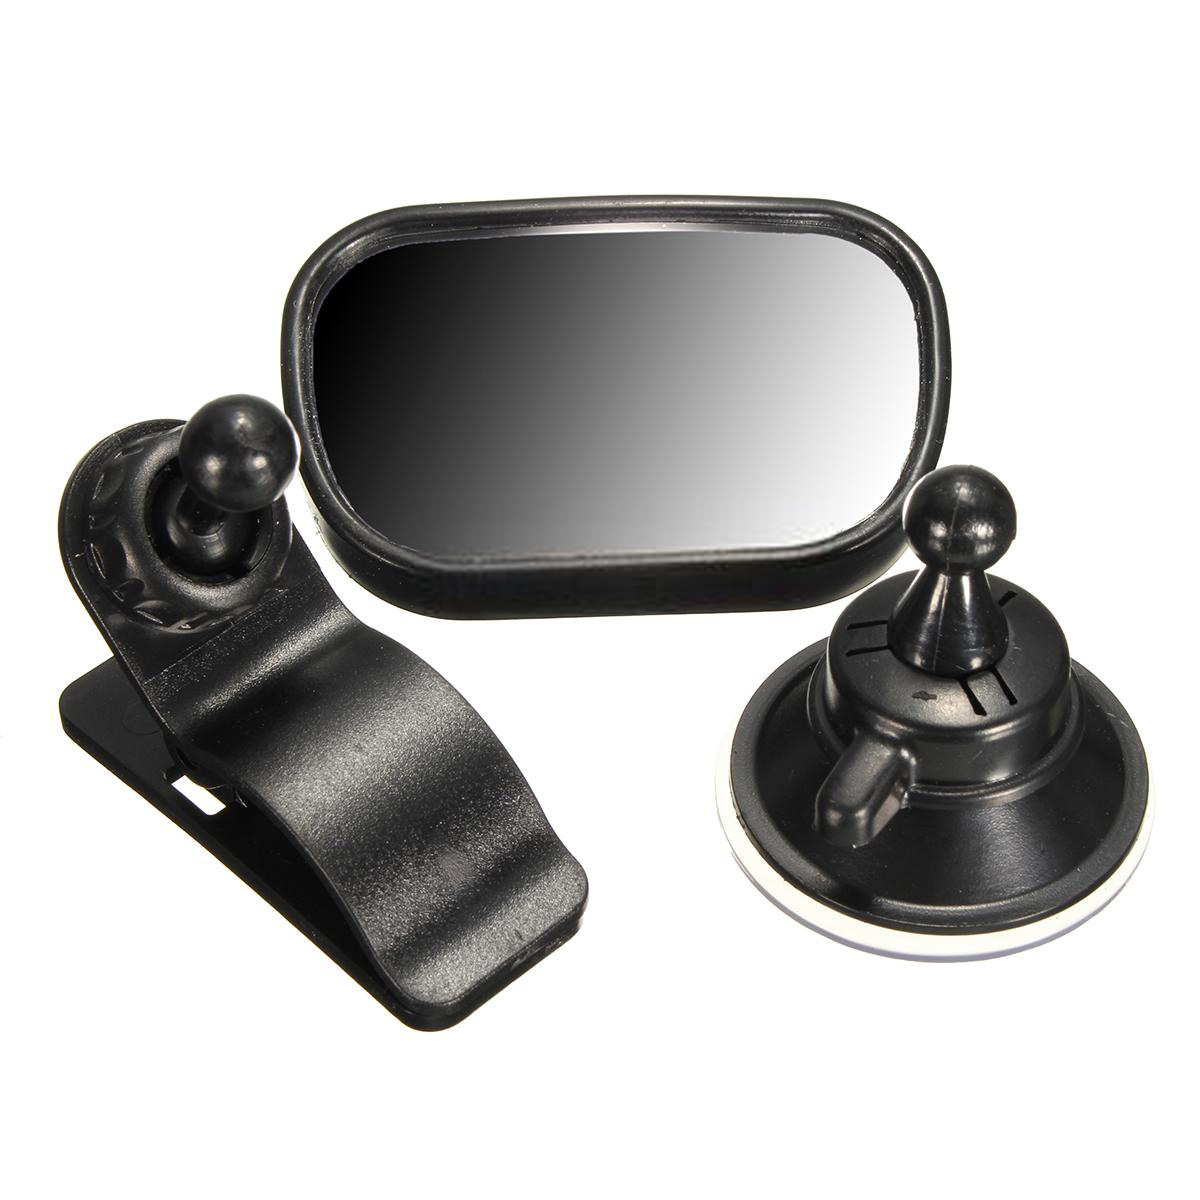 car safety seat rear-view mirror for children